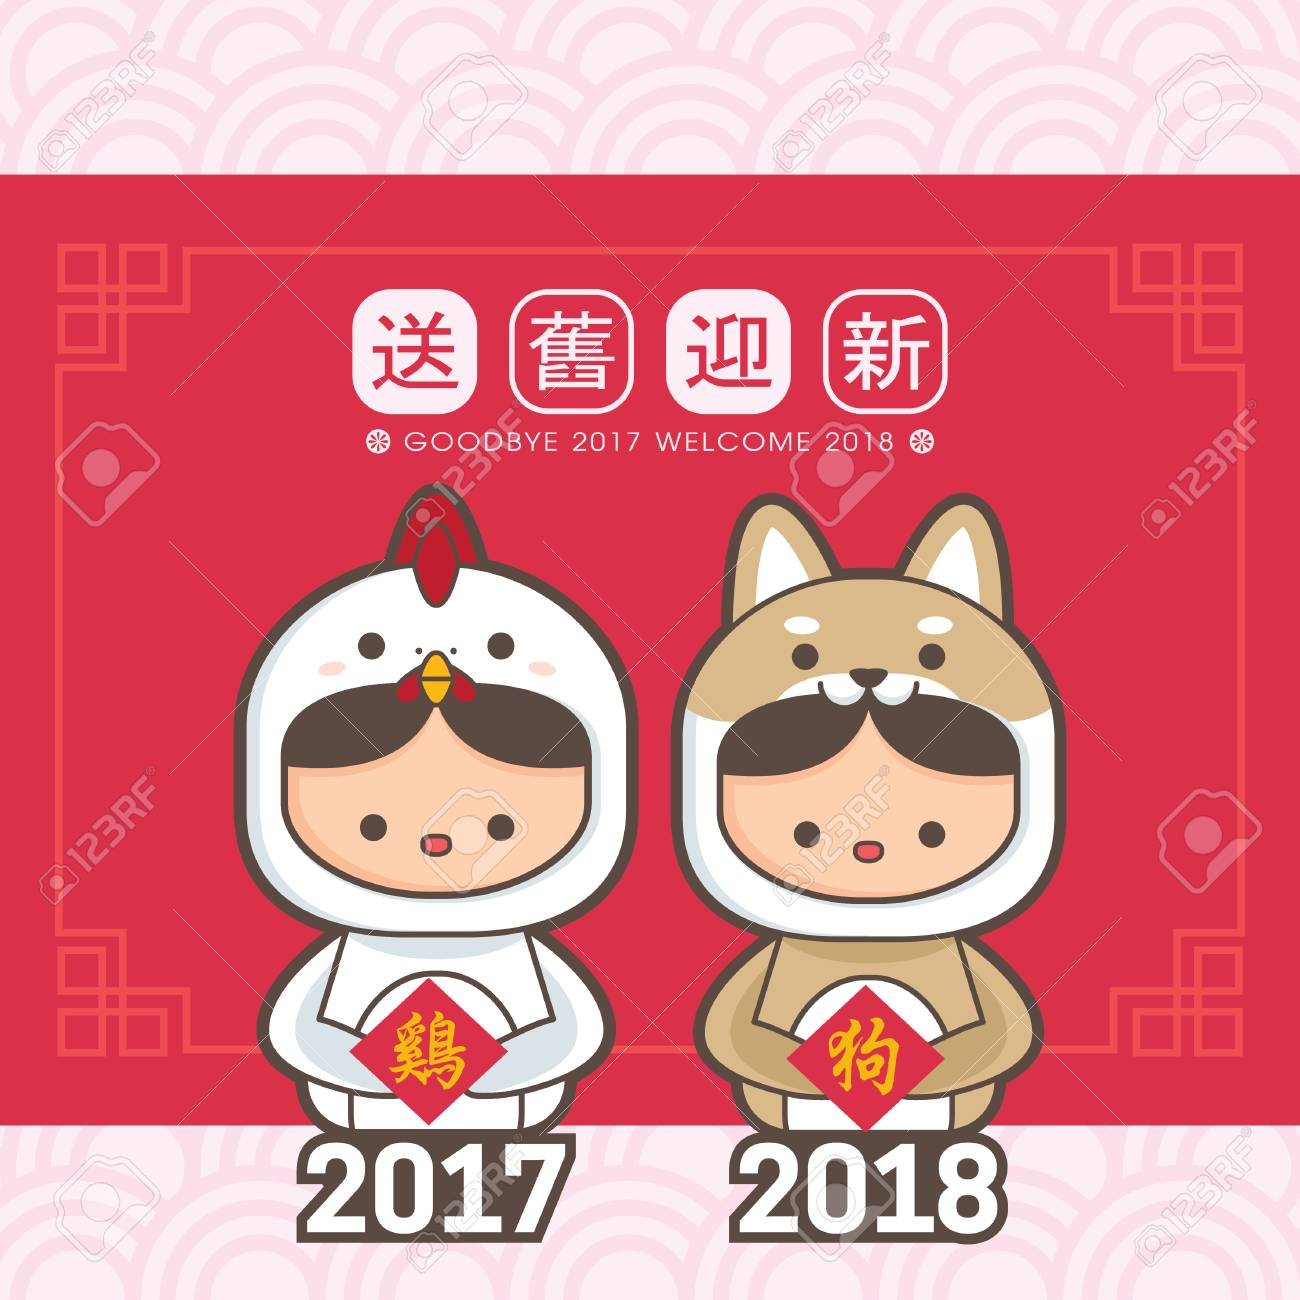 2018 chinese new year greeting card template cute boy and girl wearing a chicken